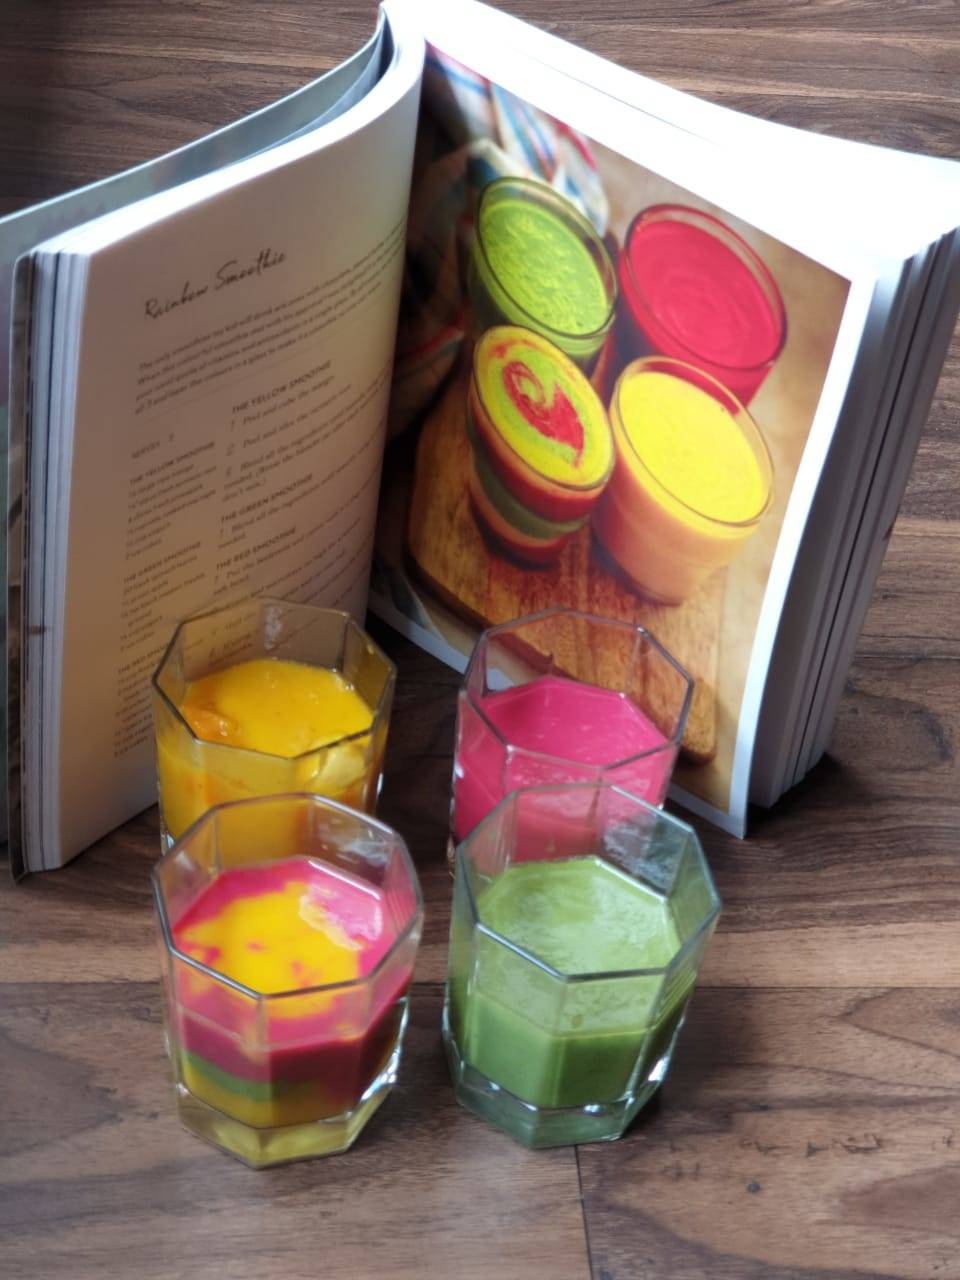 Rainbow smoothie made from a recipe based out of a cook book